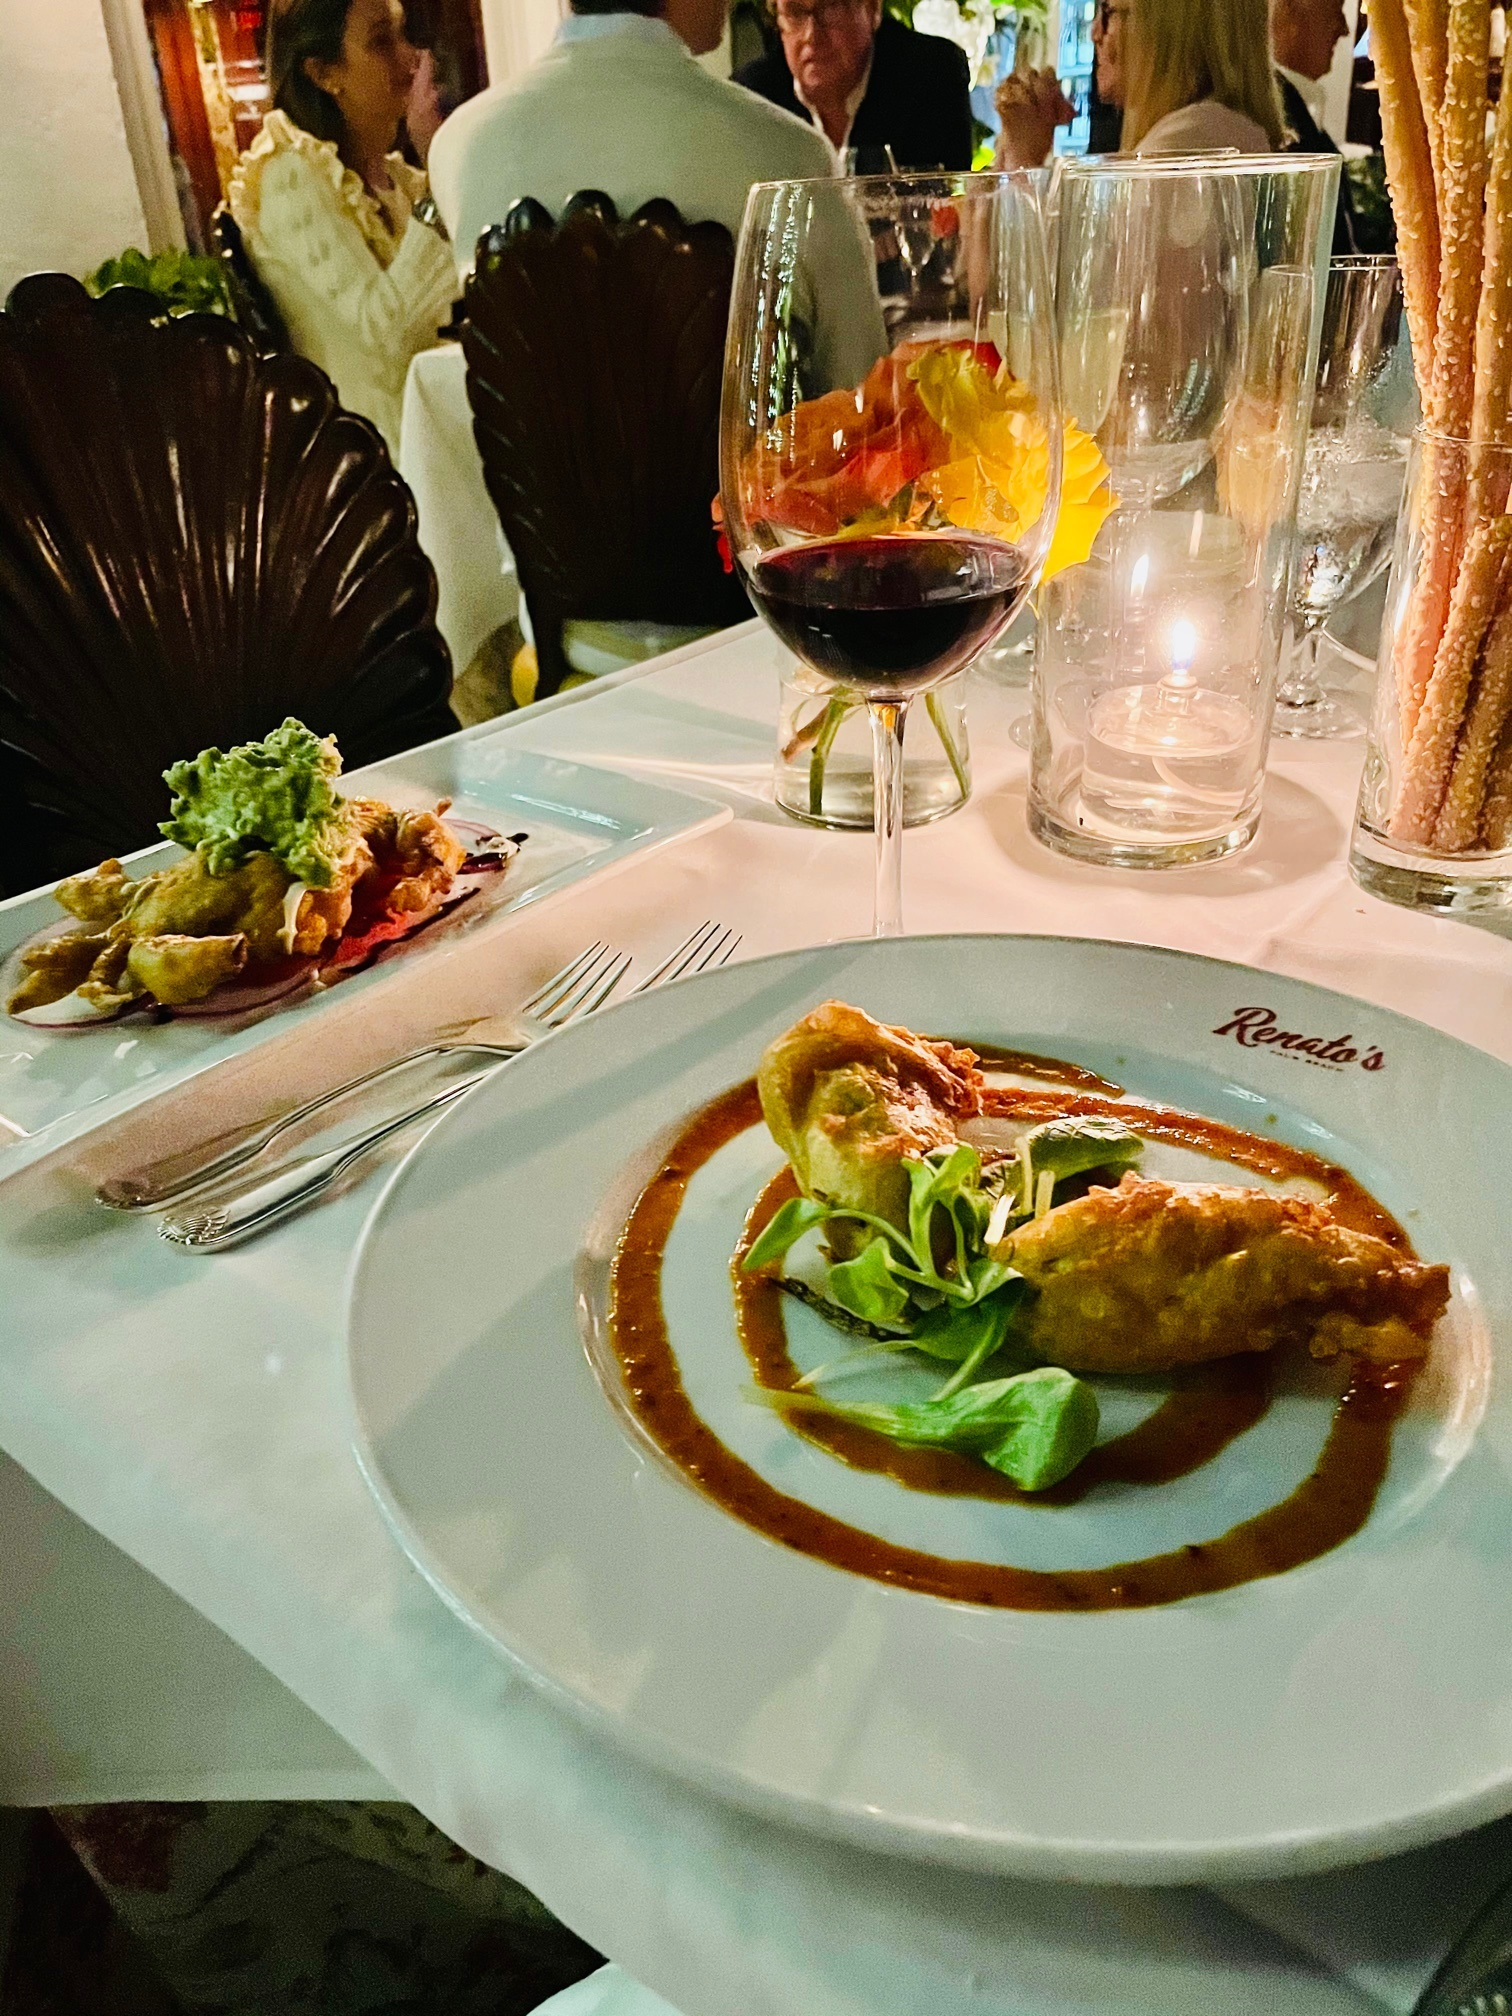 wining and dining in Palm Beach, Palm Beach restaurants, Renato's